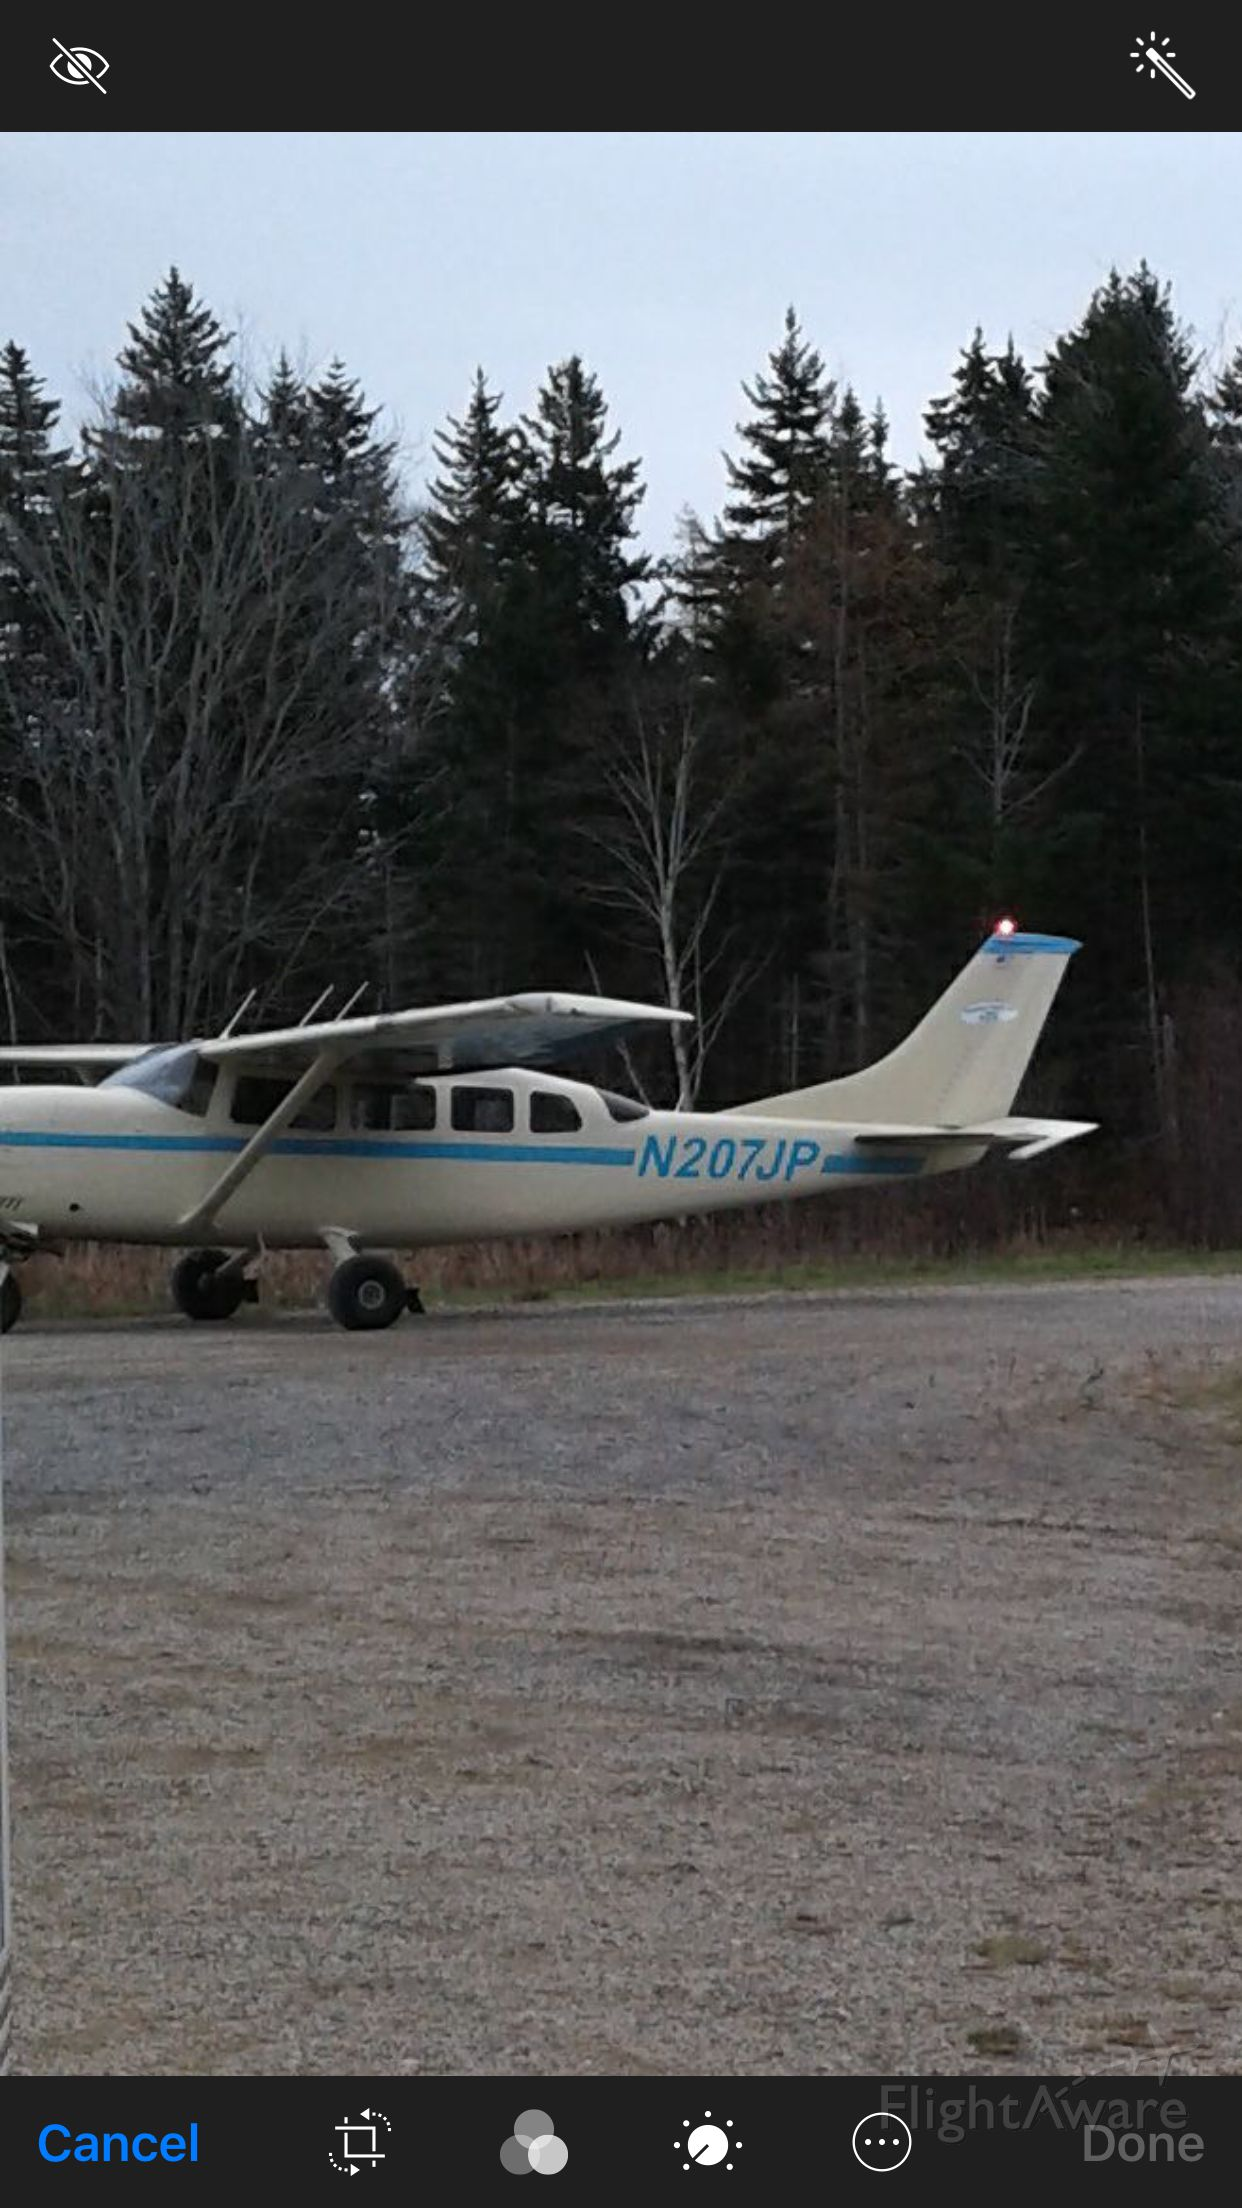 Cessna T207 Turbo Stationair 8 (N207JP) - On EMS duty in Maine